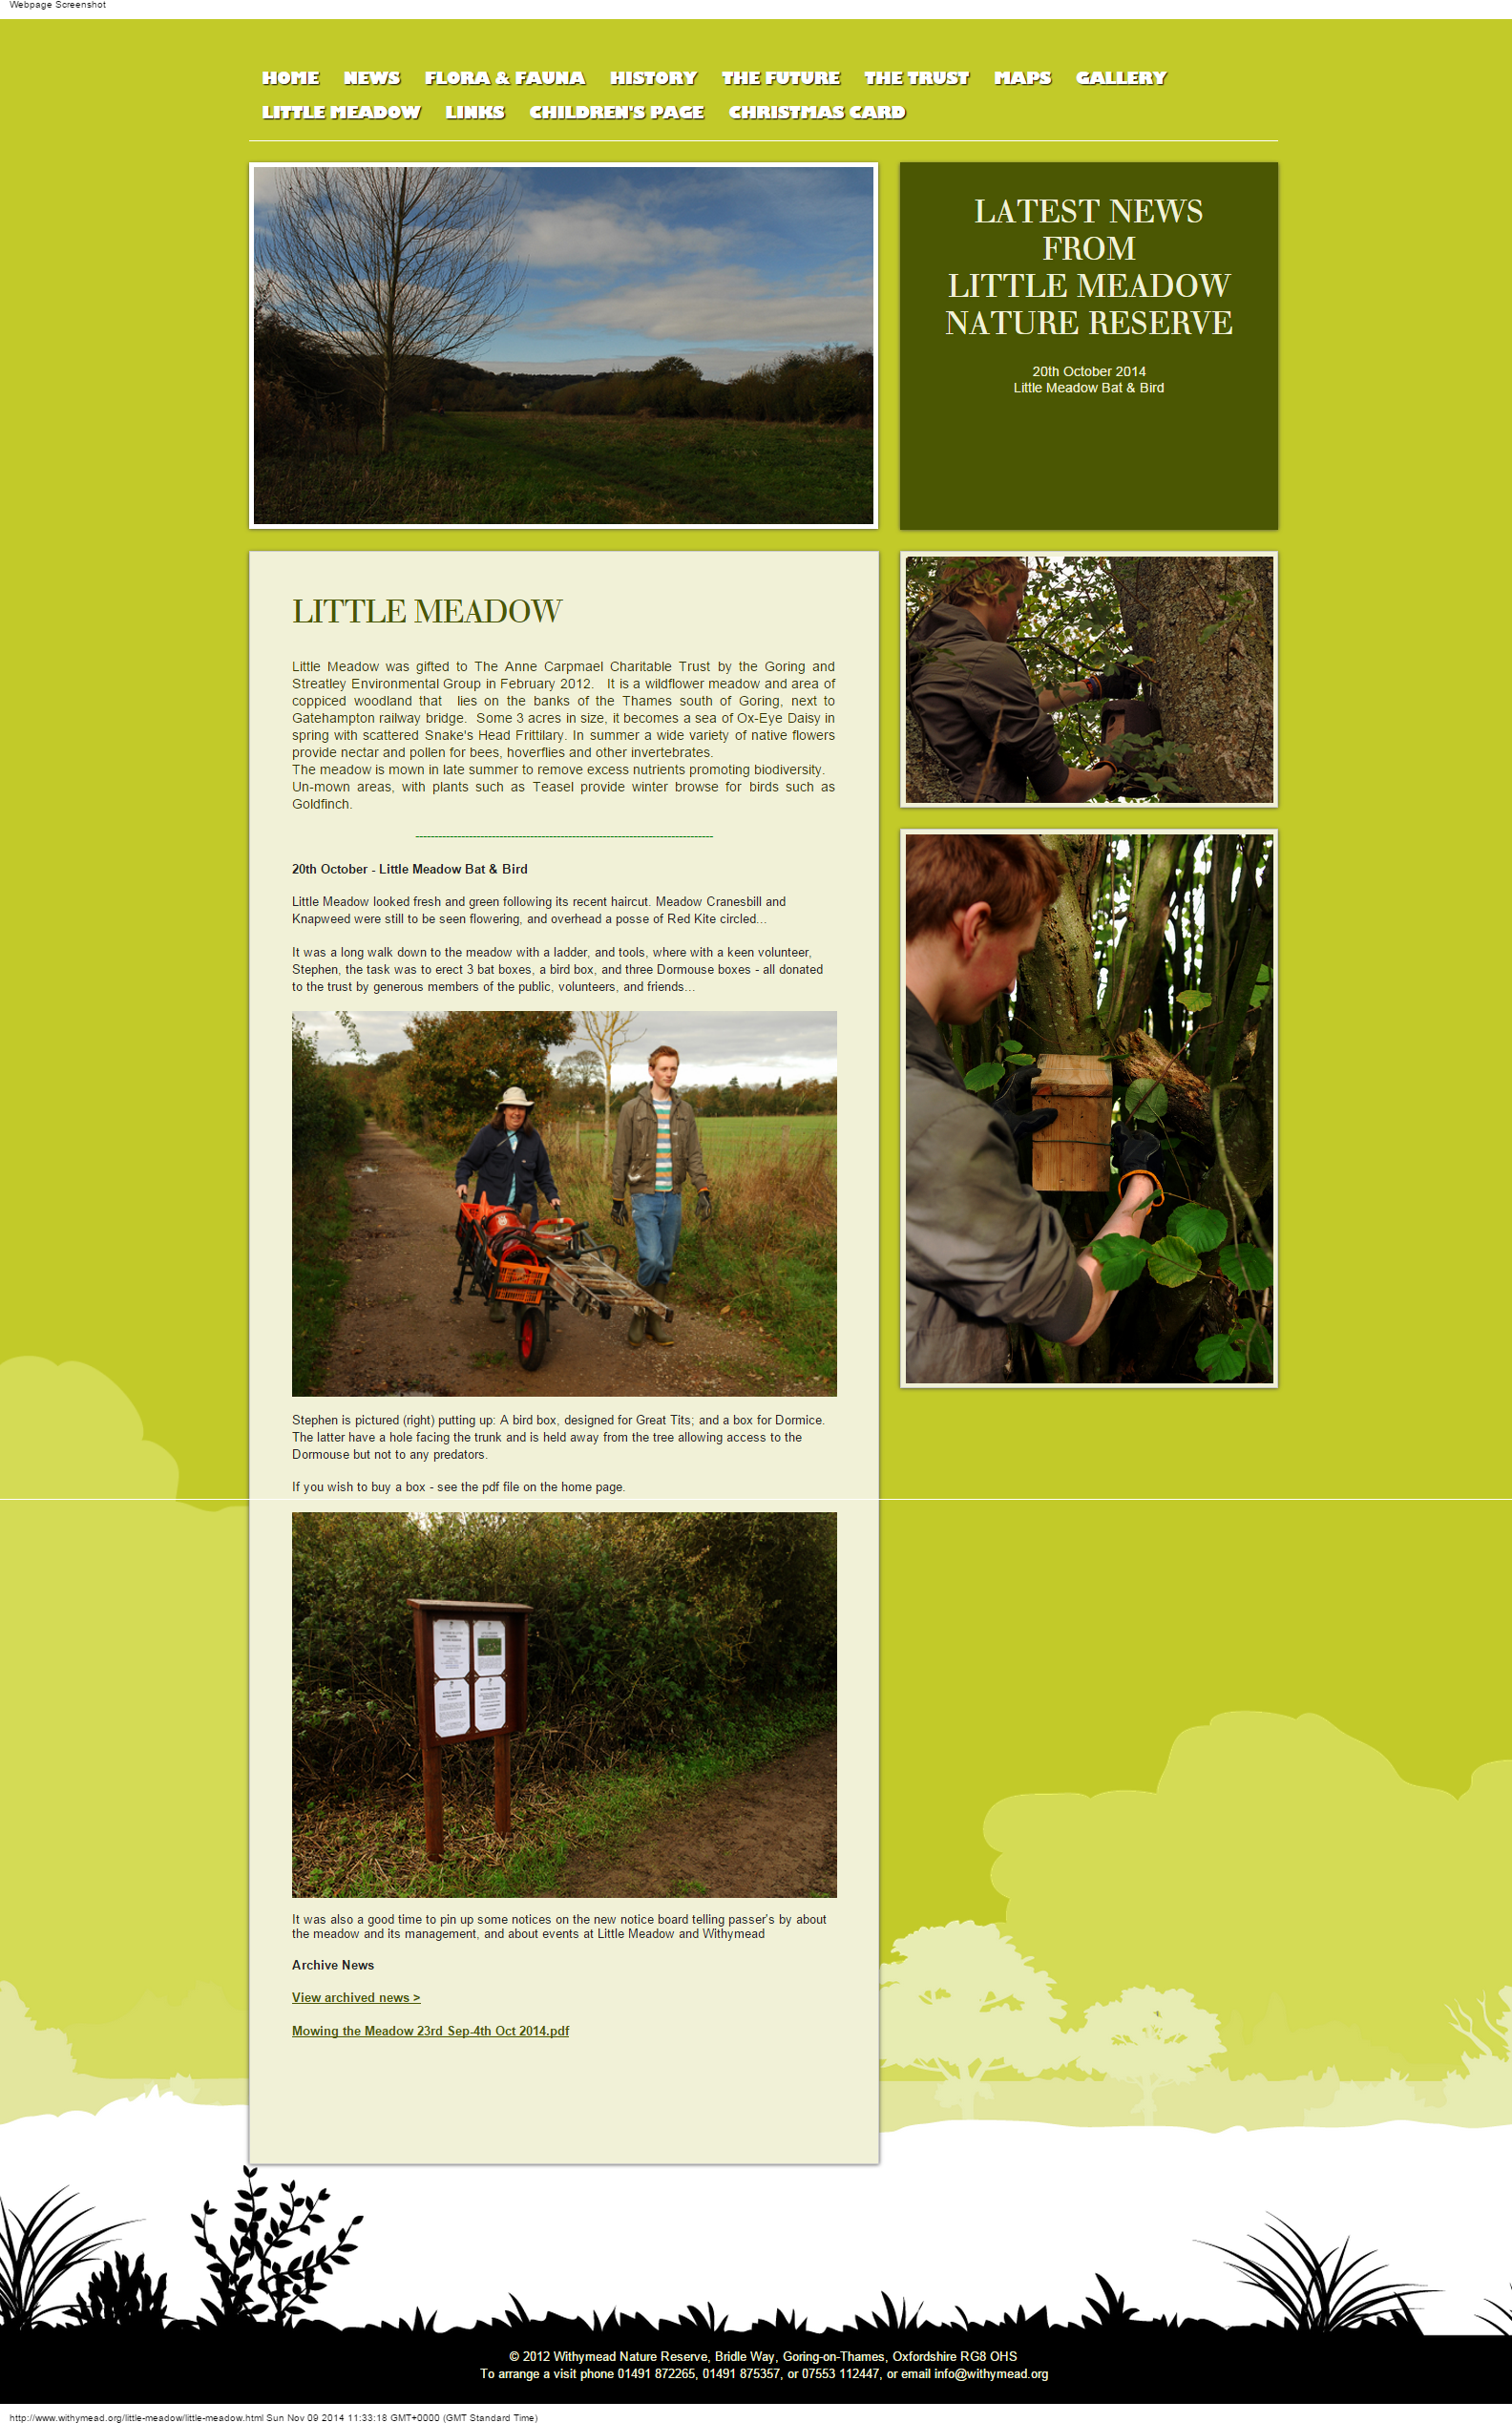 Archived news from Withymead Nature Reserve.